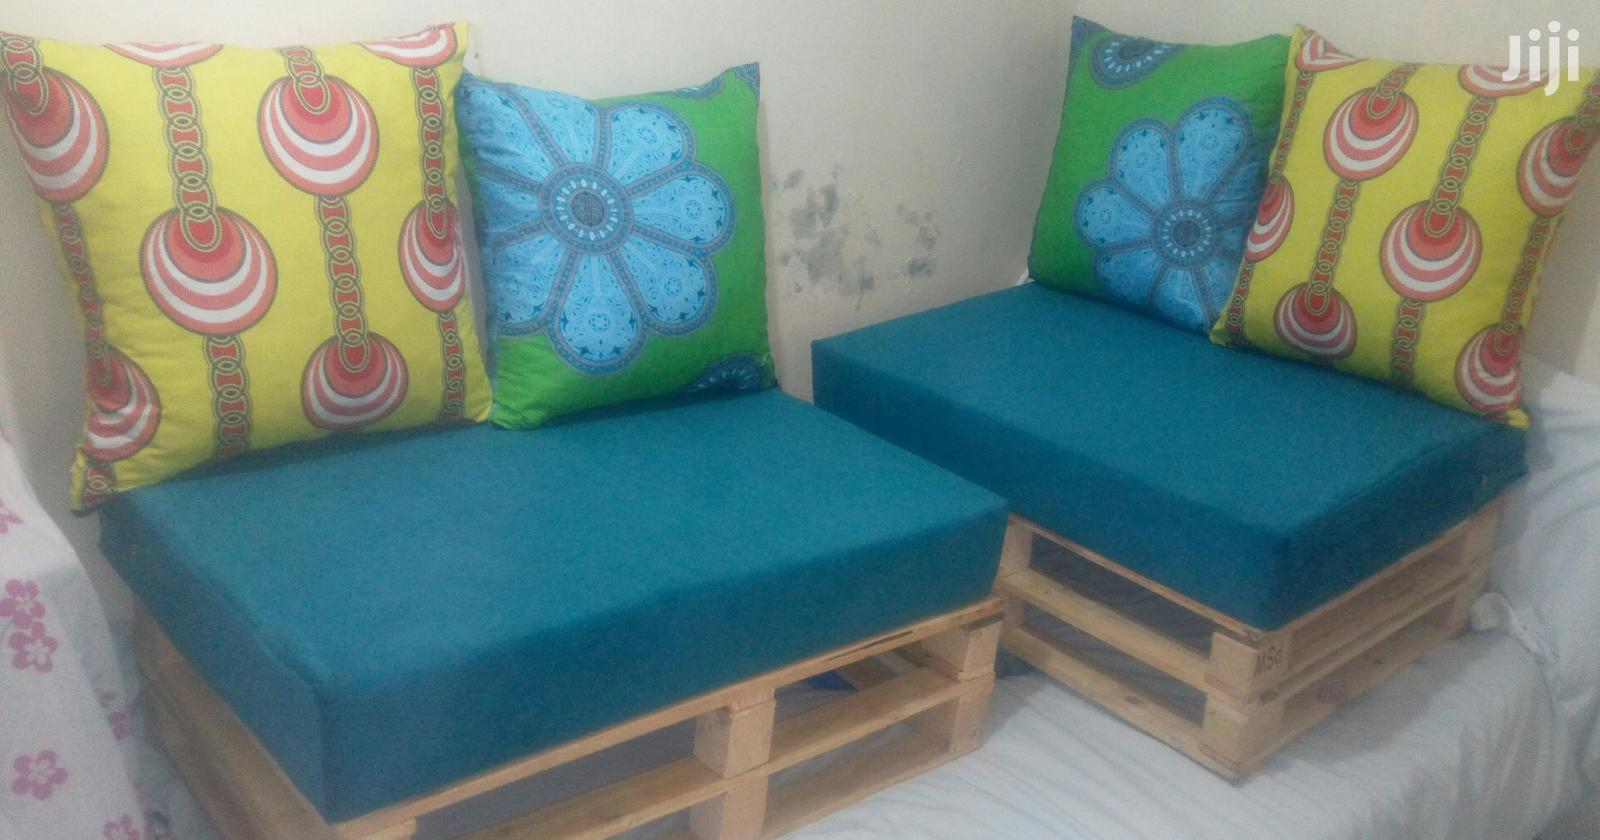 Trendy 4 Seater Pallet Seats/Pallet Sofas/Pallet Furniture